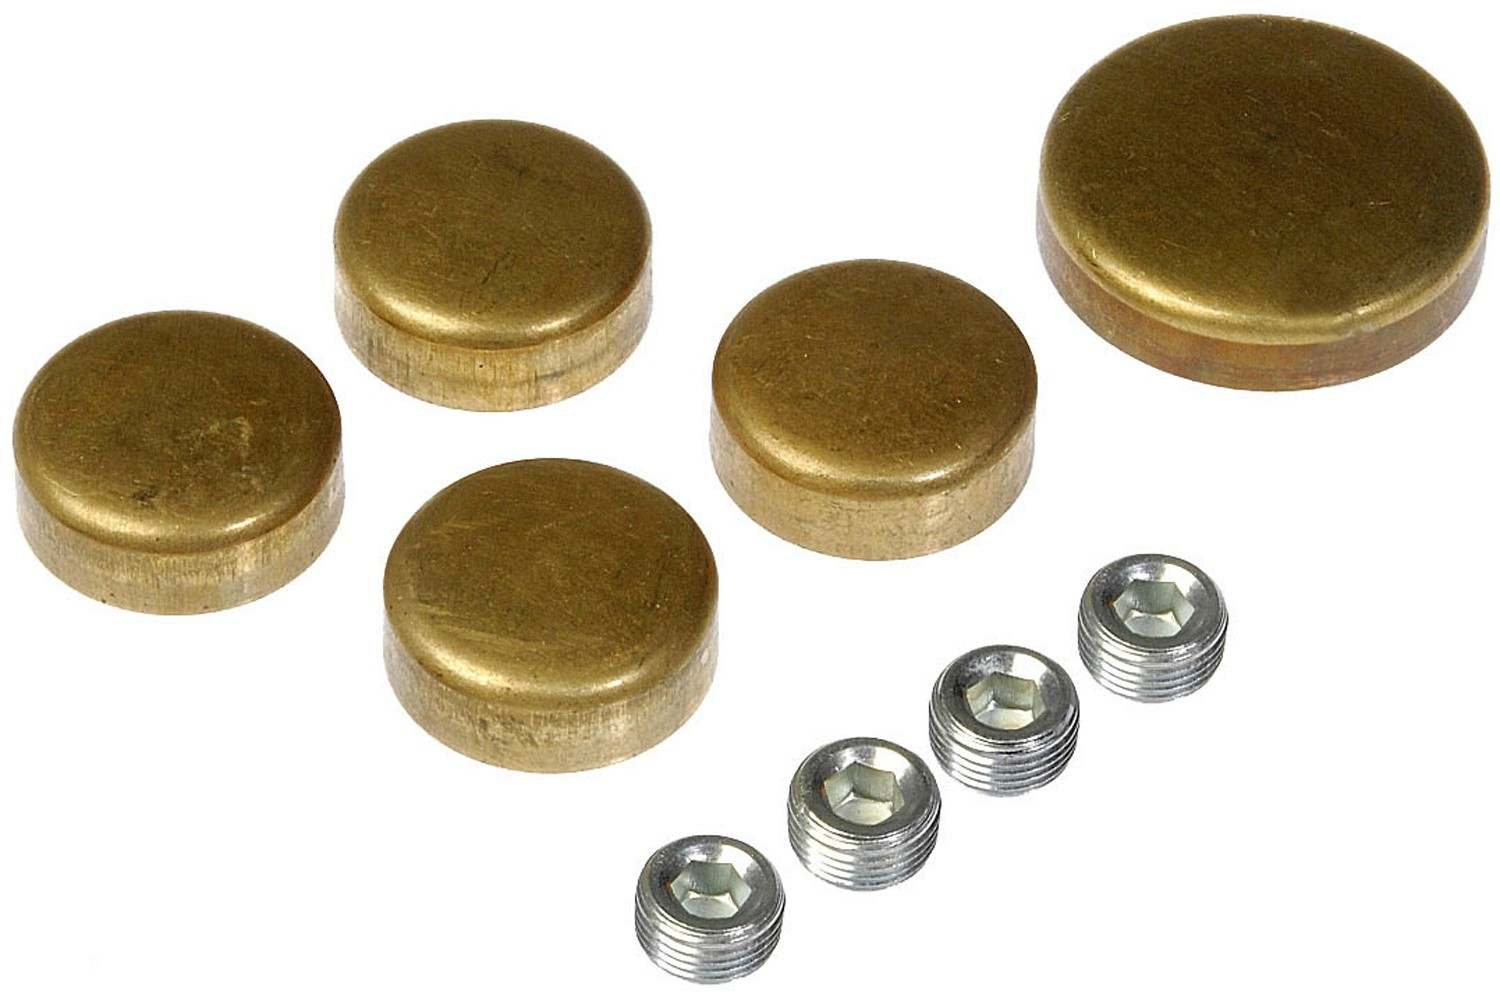 DORMAN - AUTOGRADE - Engine Expansion Plug Kit - DOC 02690